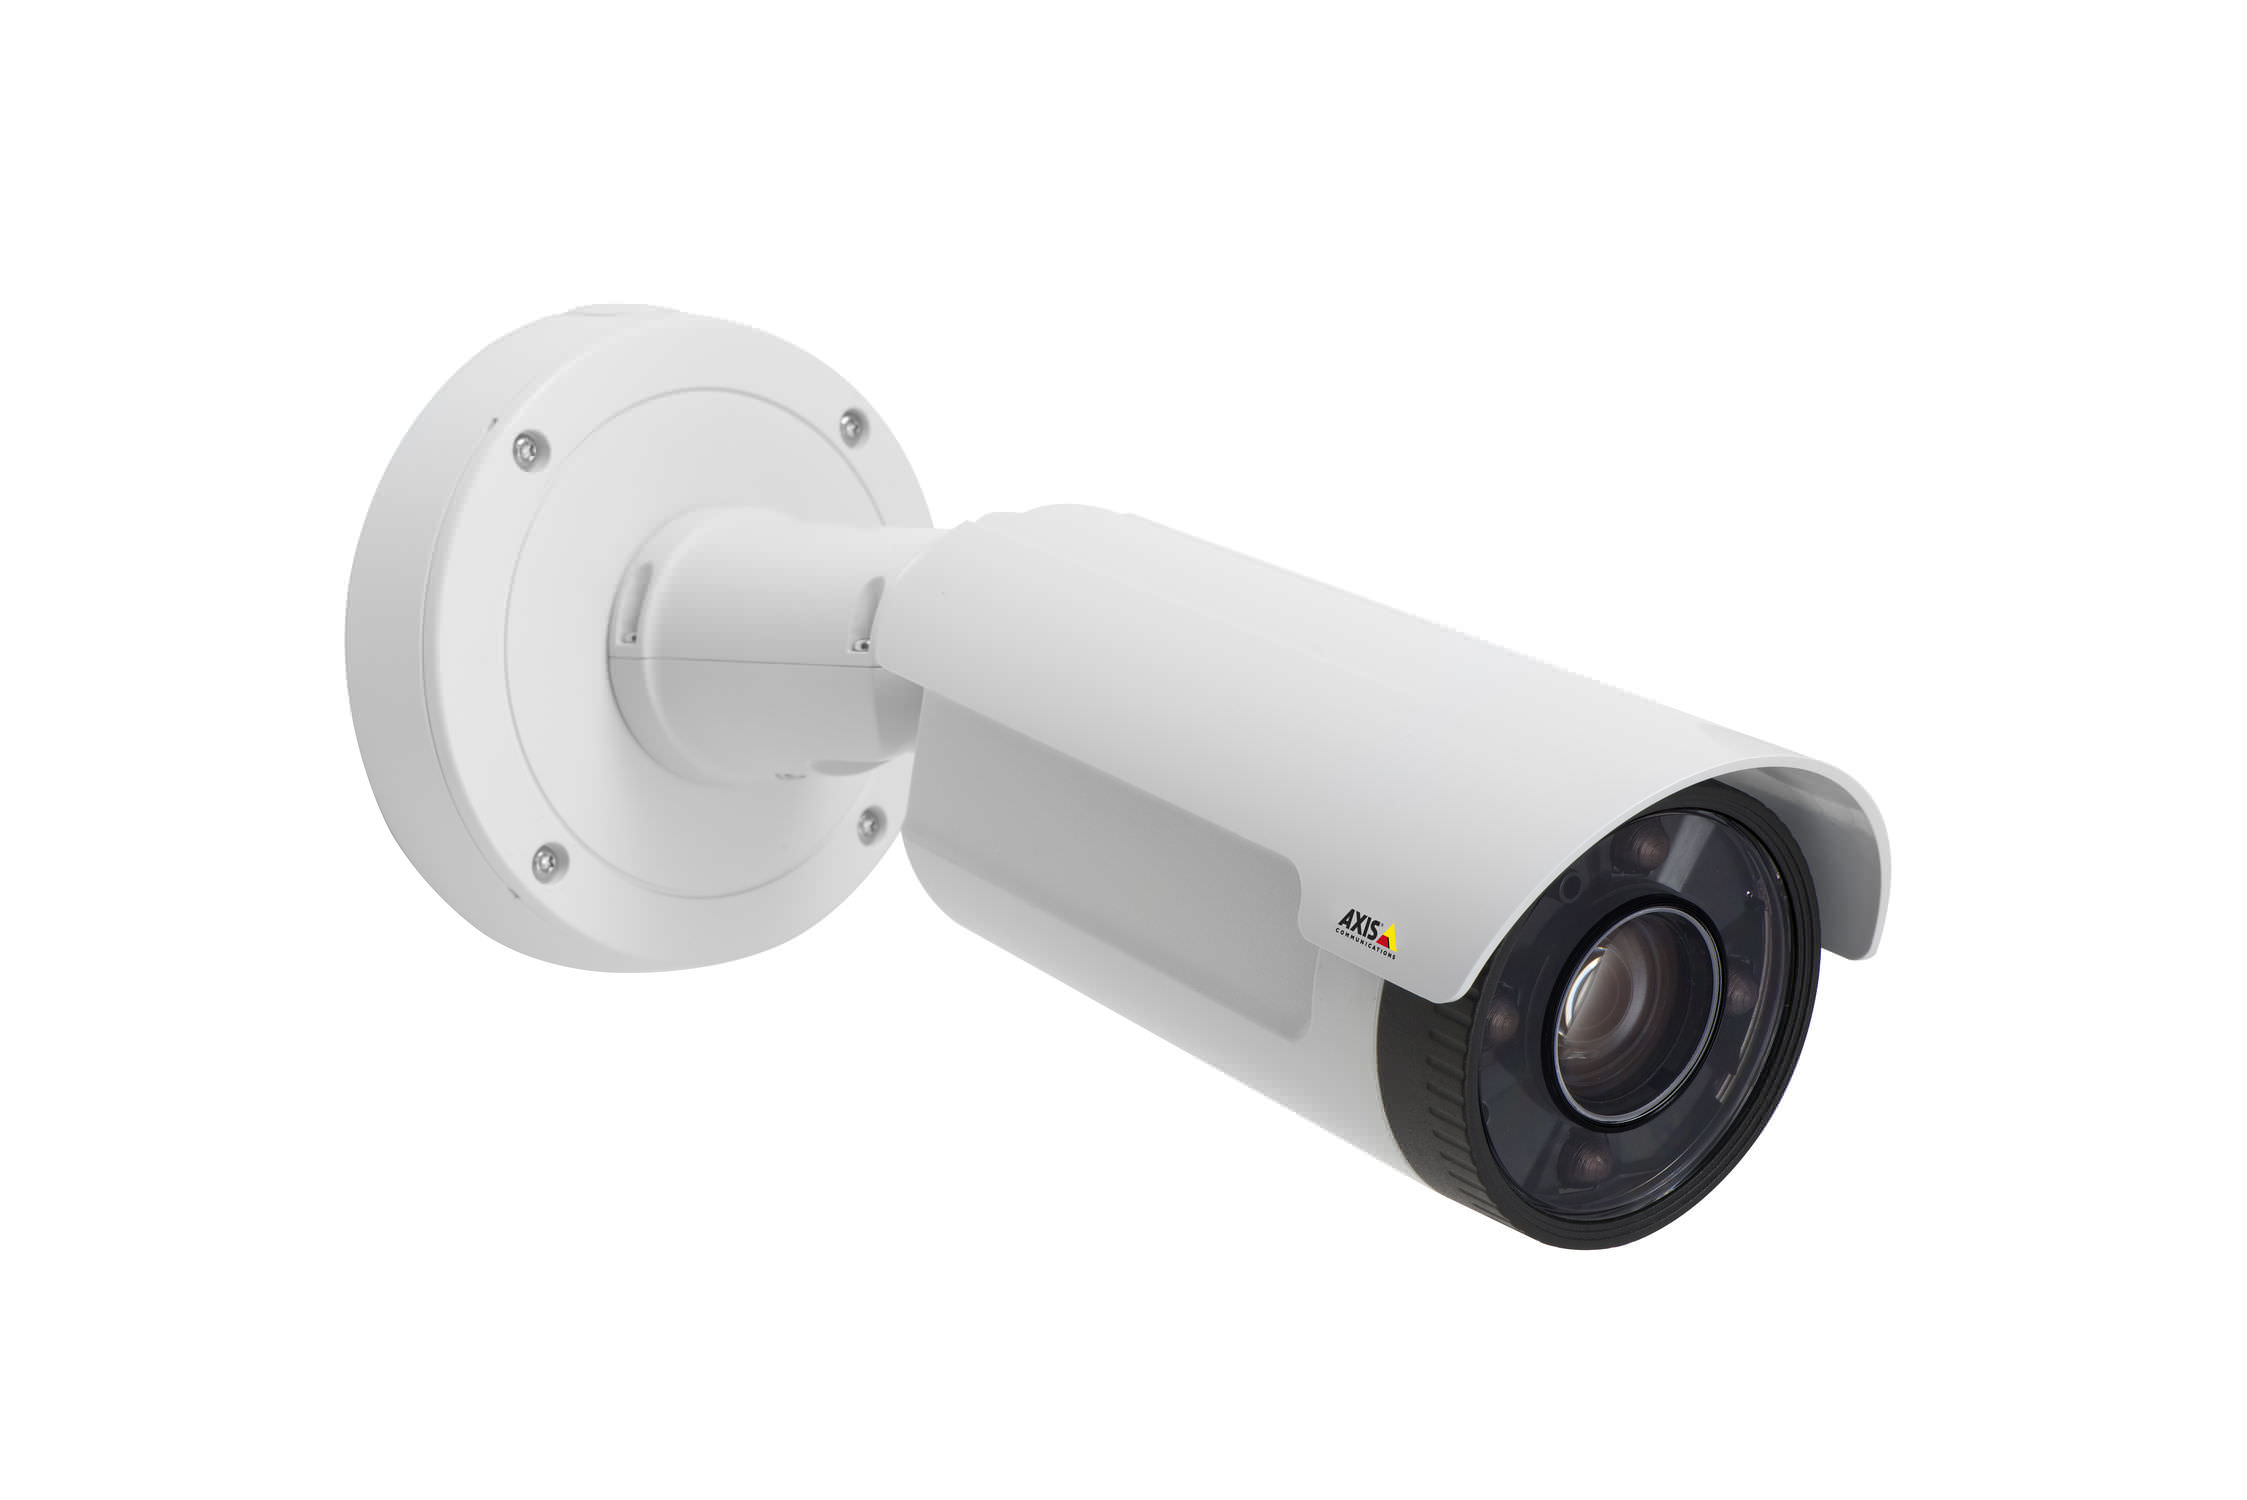 CCTV Security Camera & DVR_3